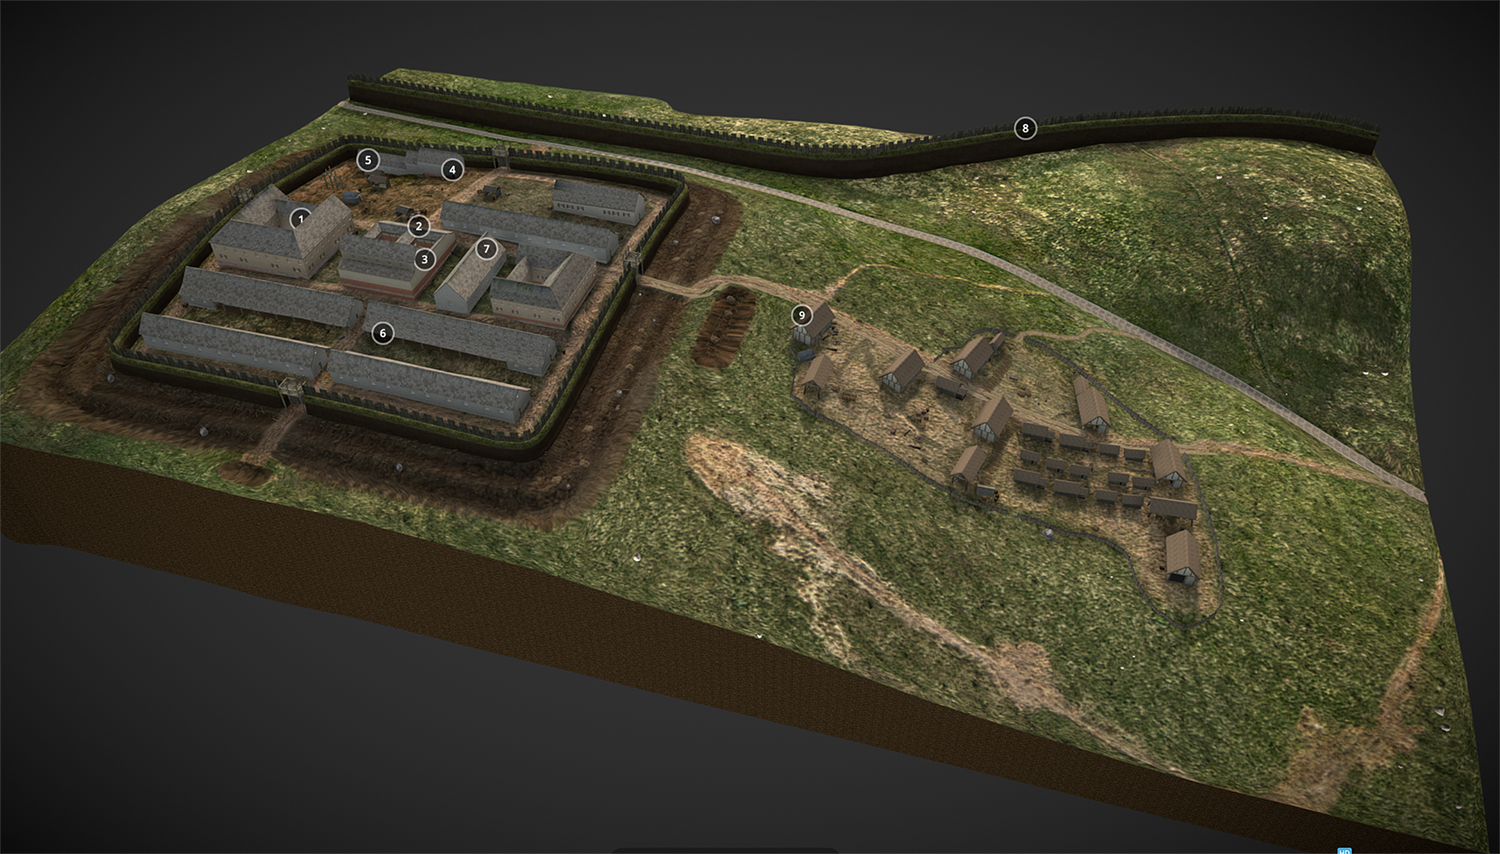 A digital reconstruction of a Roman fort. The fort is located on a hillside beside a large defensive wall. There is a walled section containing orderly military buildings and a village-like collection of buildings outside the walls.